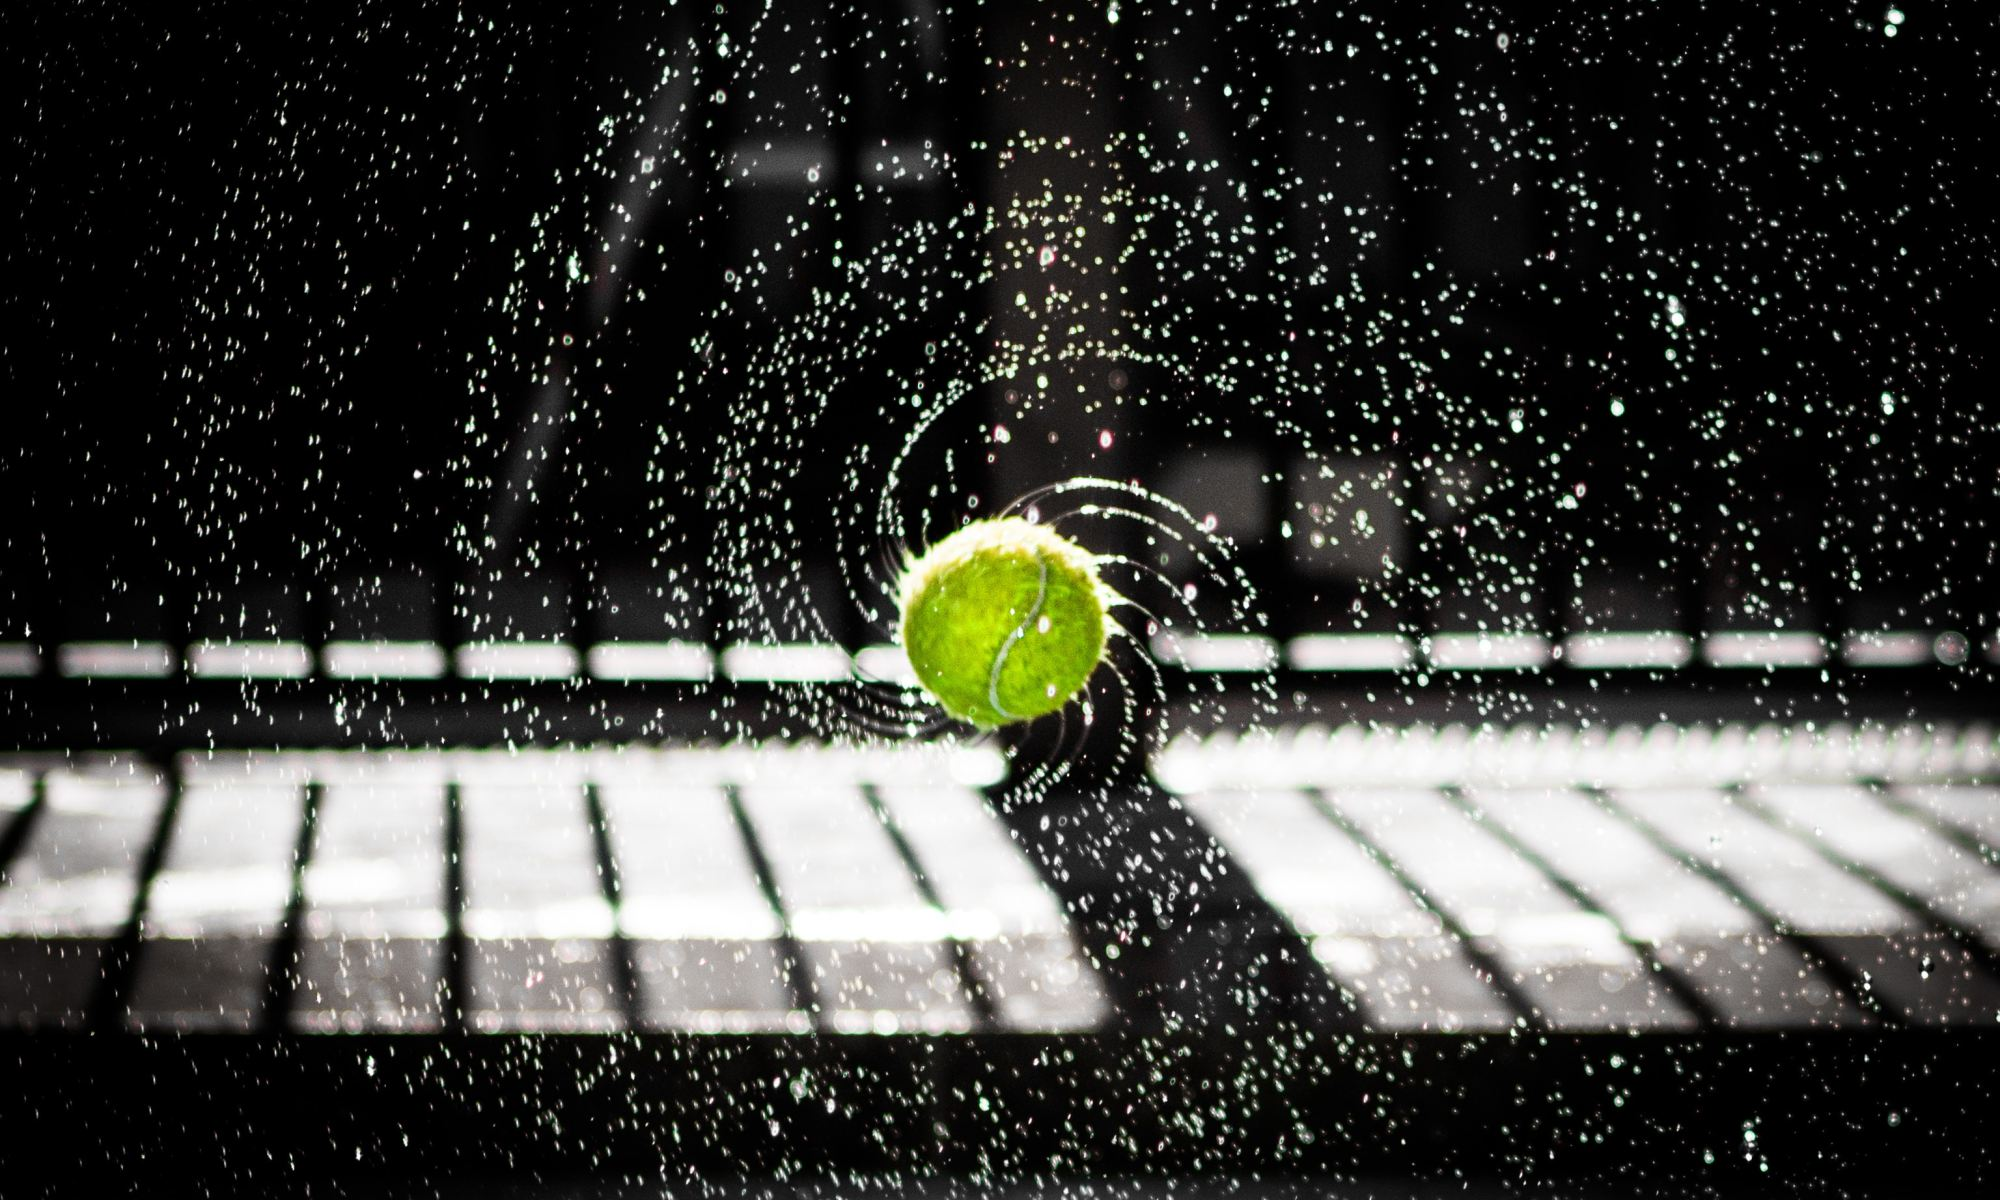 Time lapse photo of green tennis ball flying in air